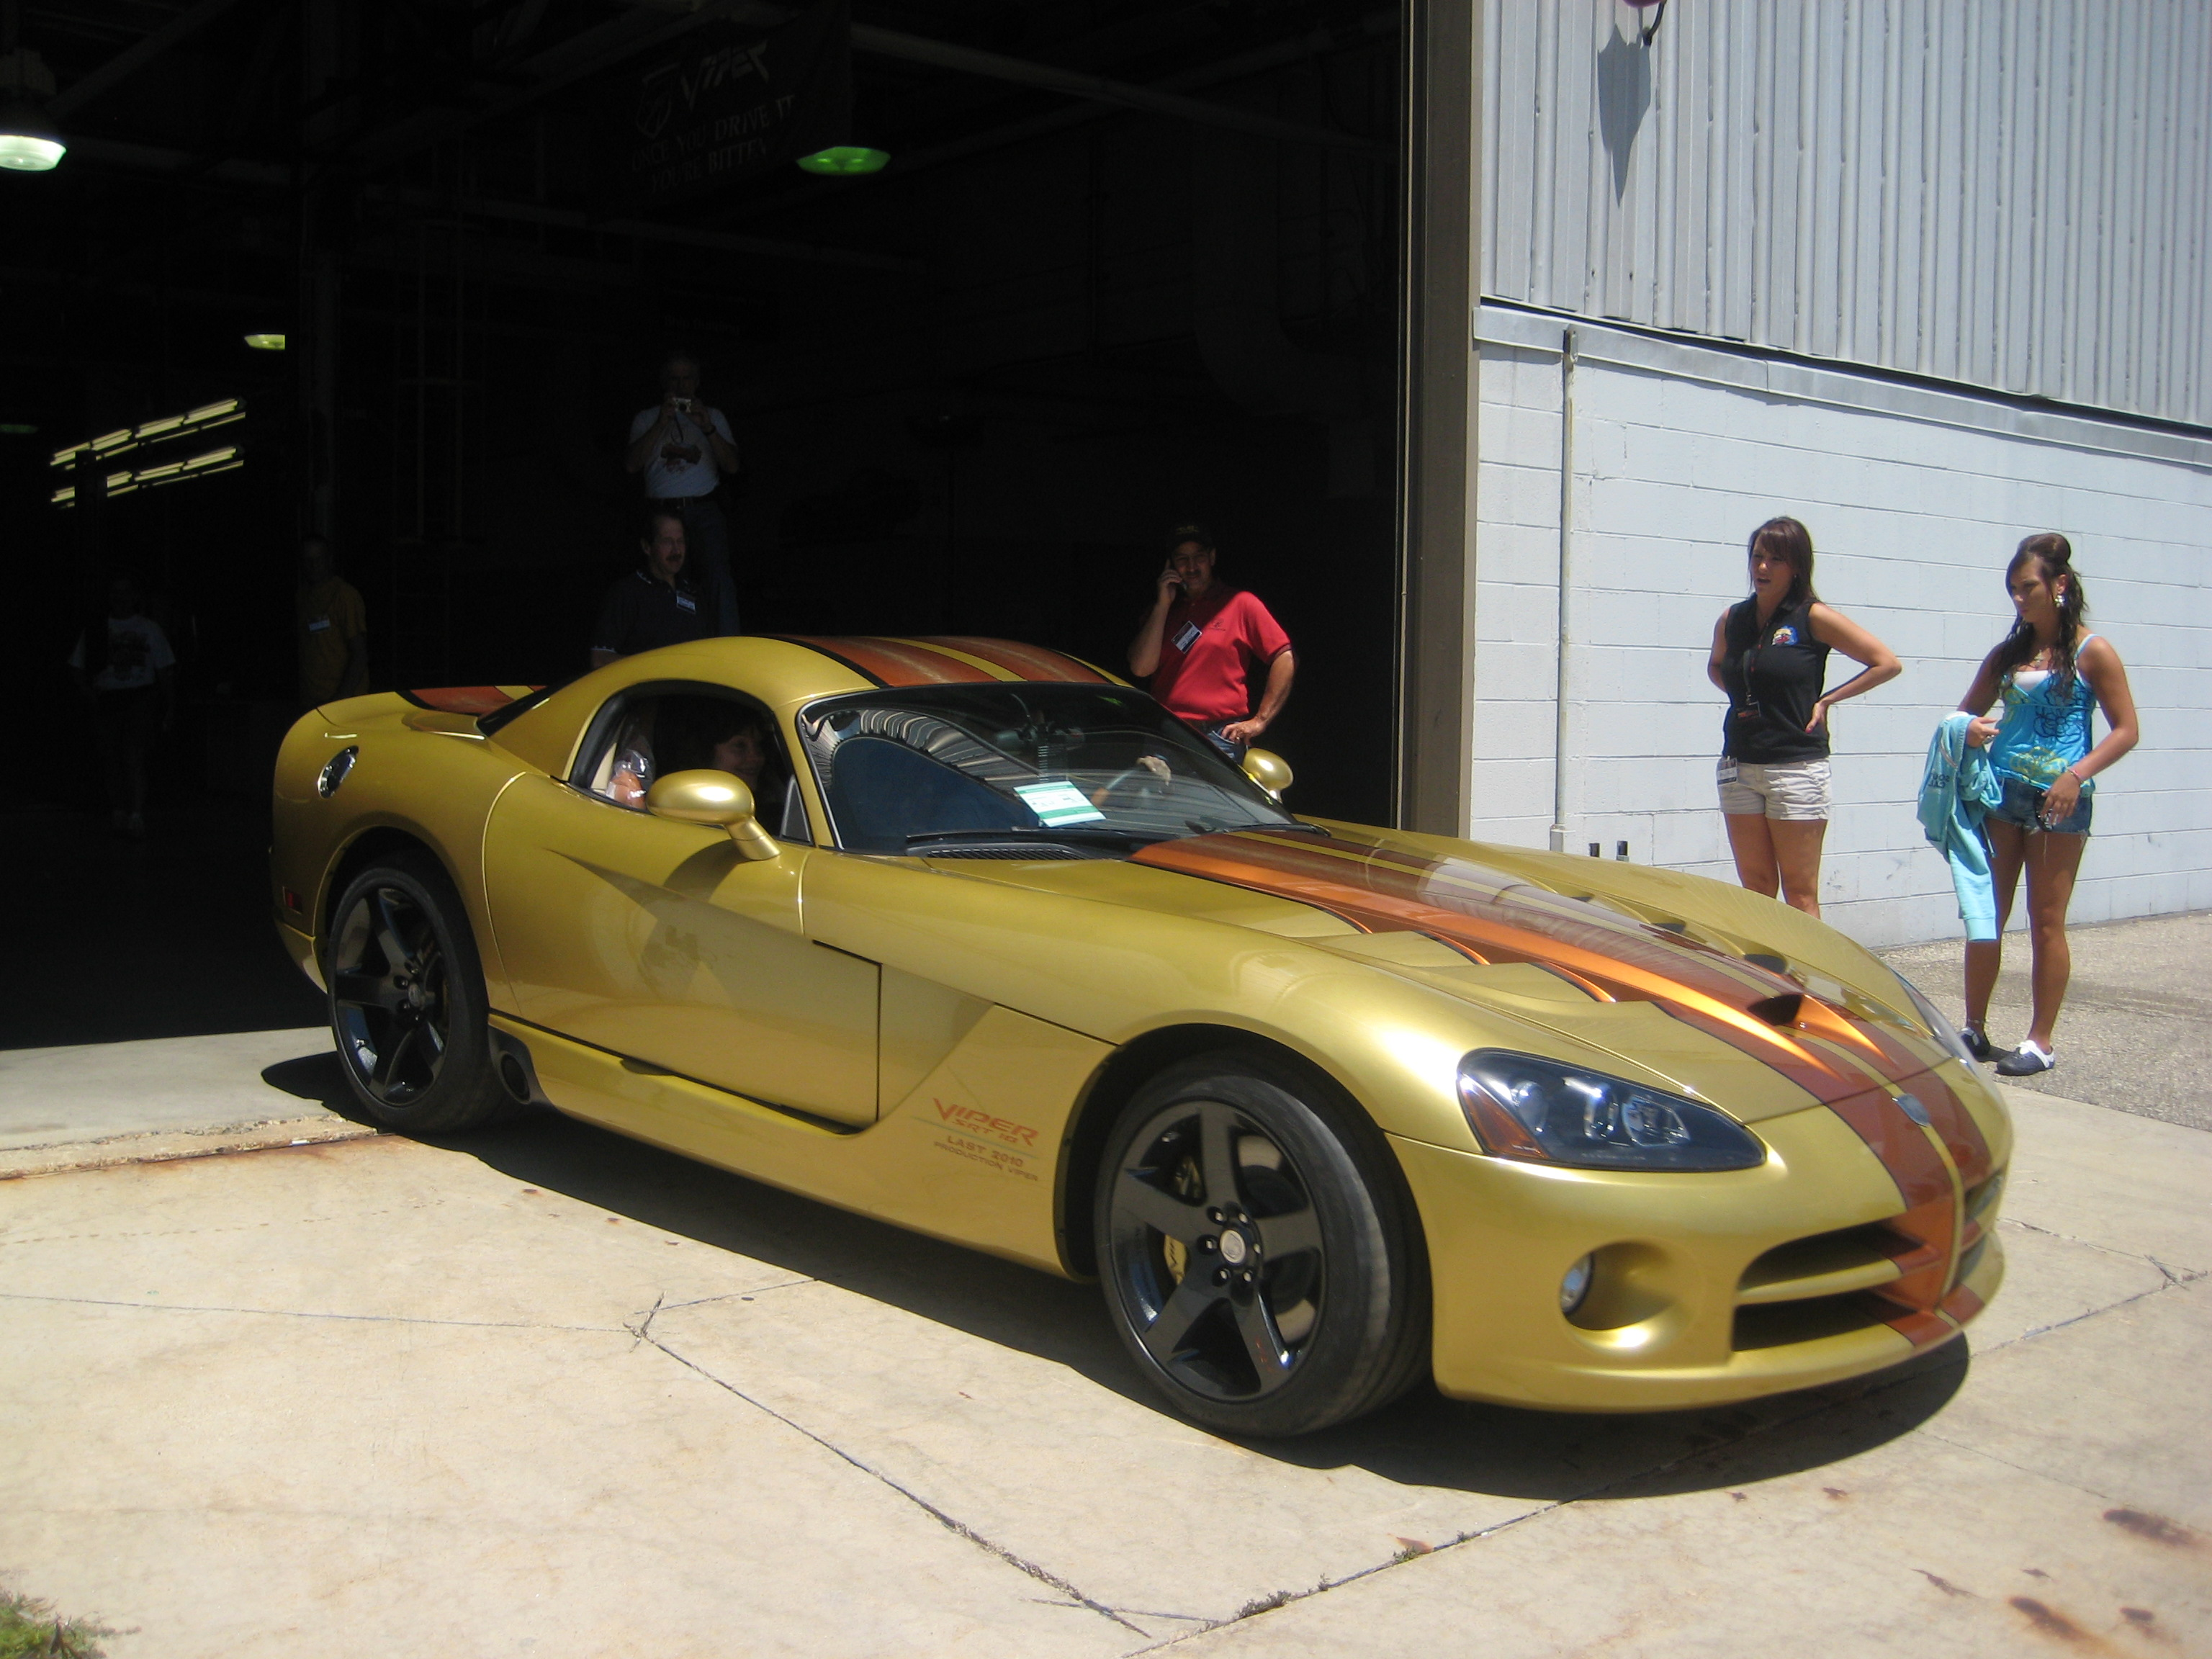 Last Gen Iv Viper Roll Of Assembly Line July 1 2010